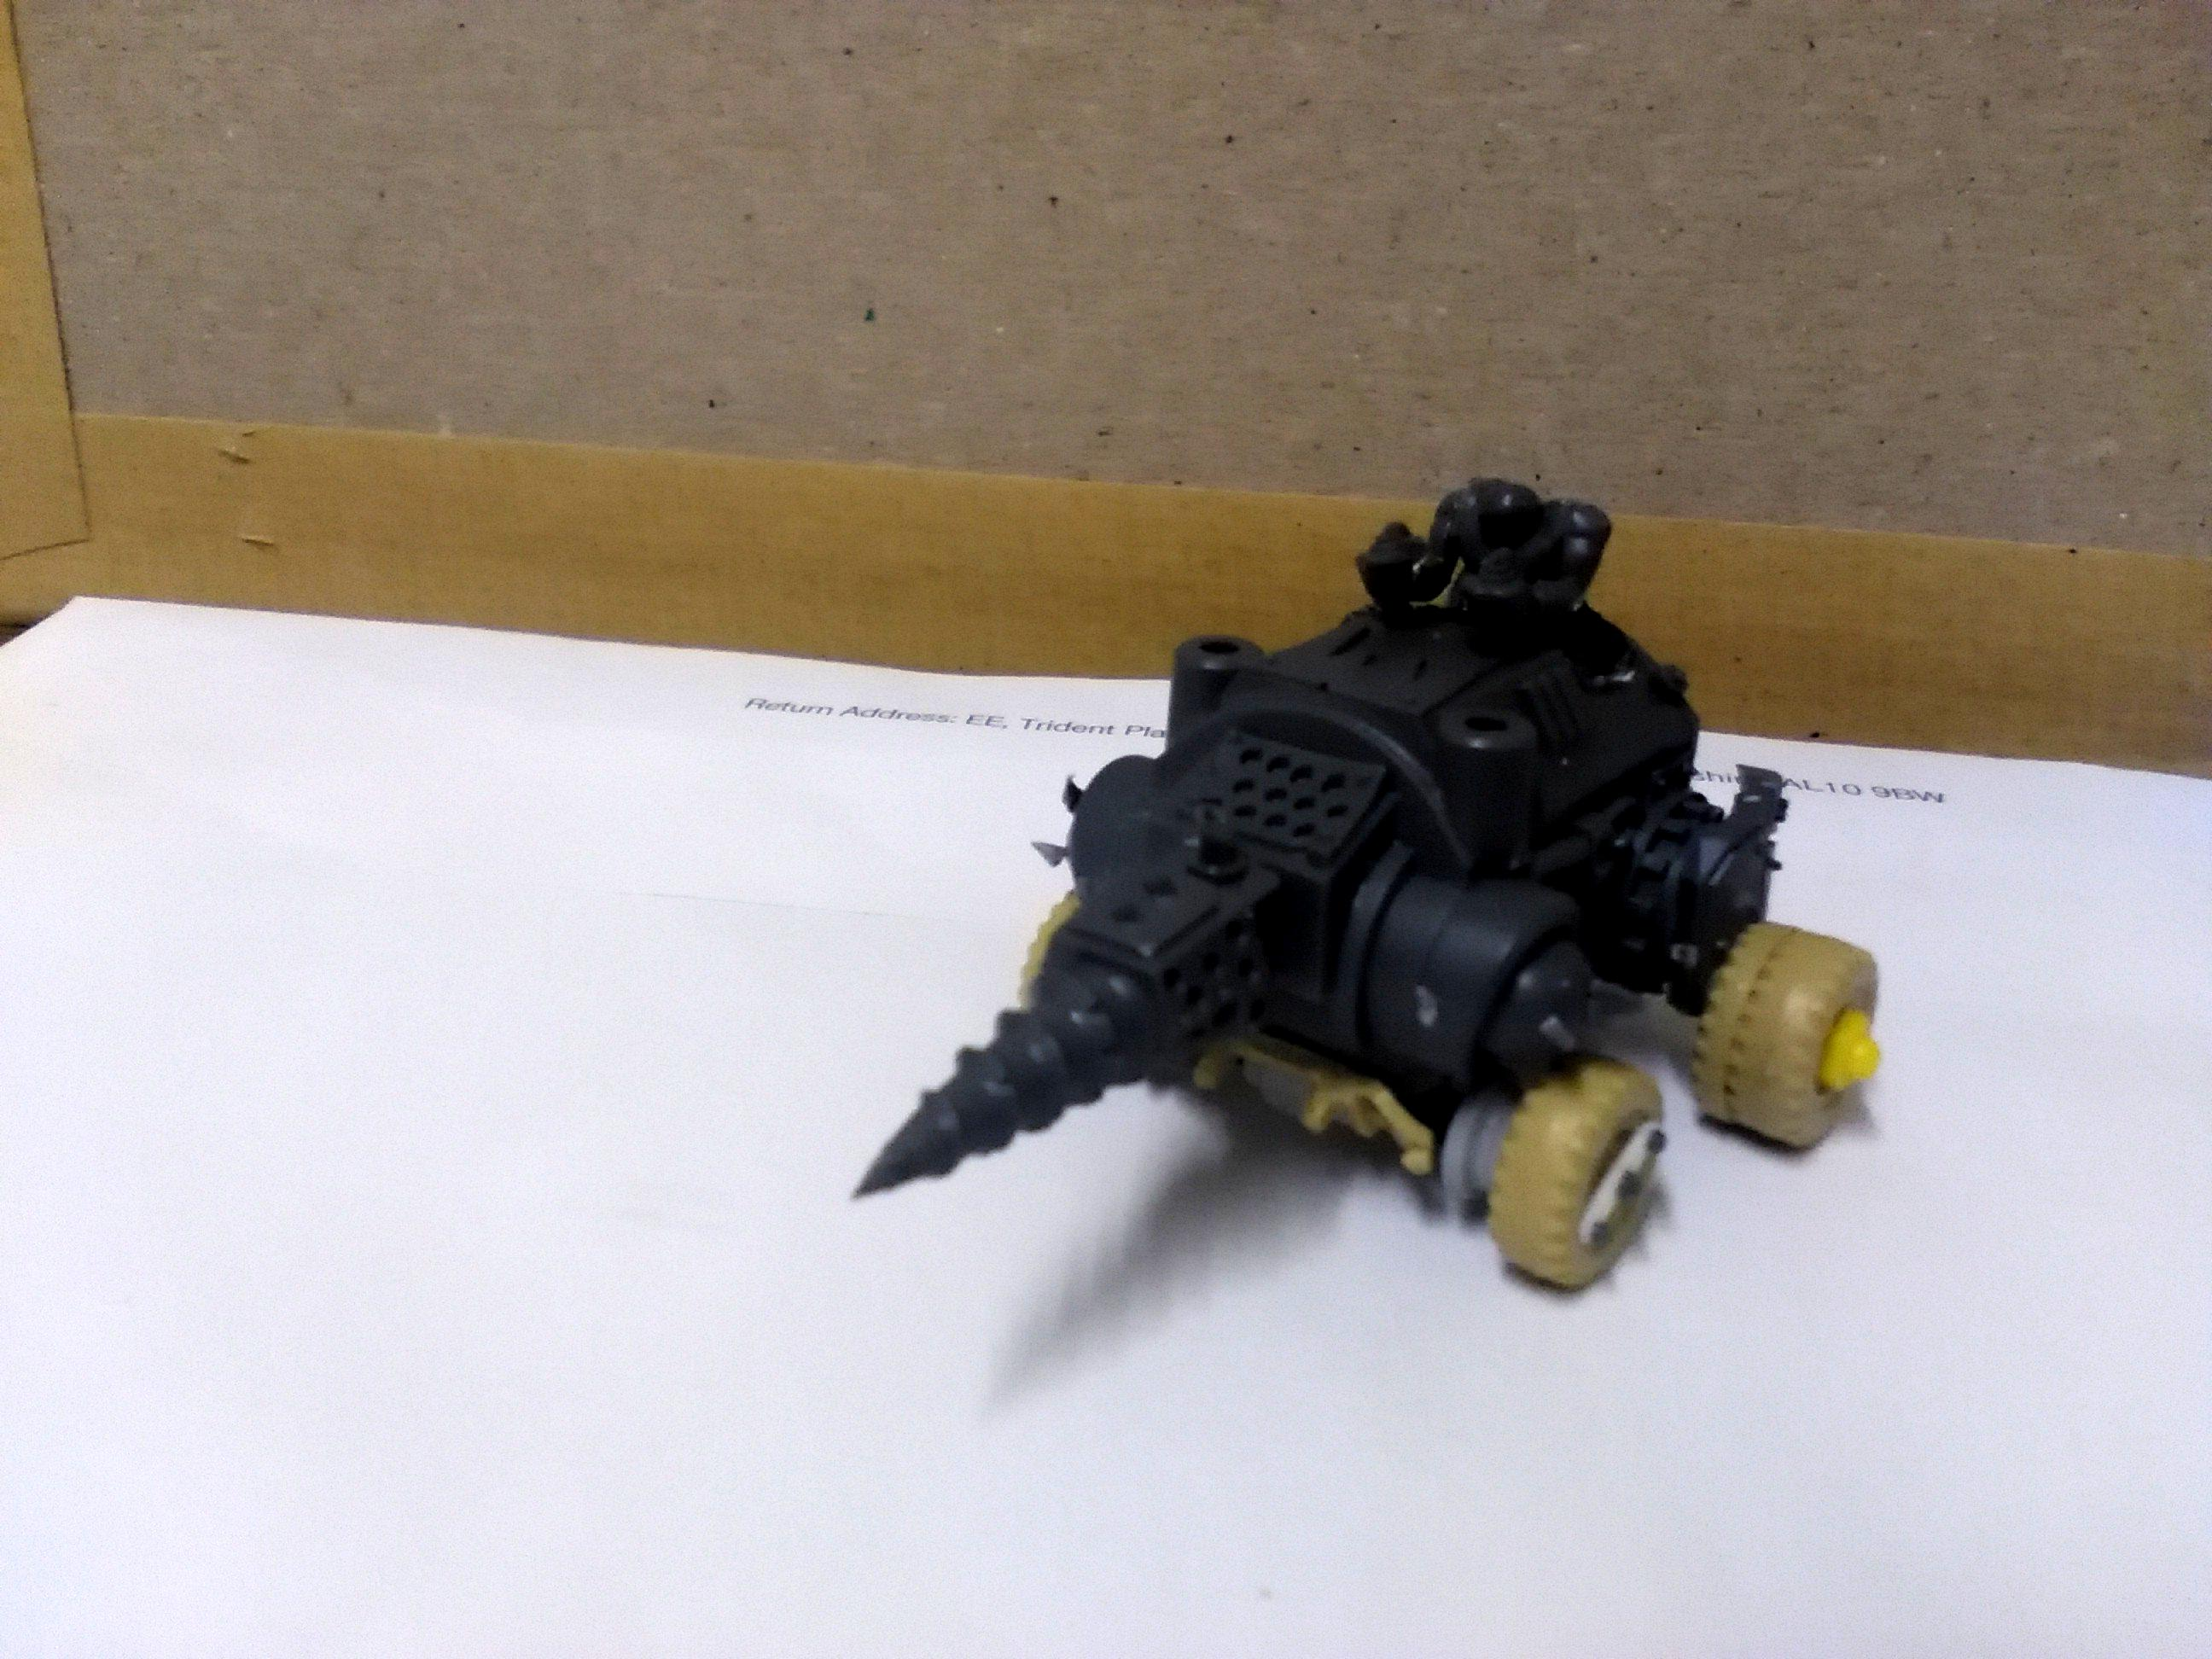 Conversion, Grot Conversion, Grots, Kitbash, Kitbashed, Ork Conversion, Ork Conversions, Ork Coustom Made Vehicles, Orks, Scratch Build, Warhammer 40,000